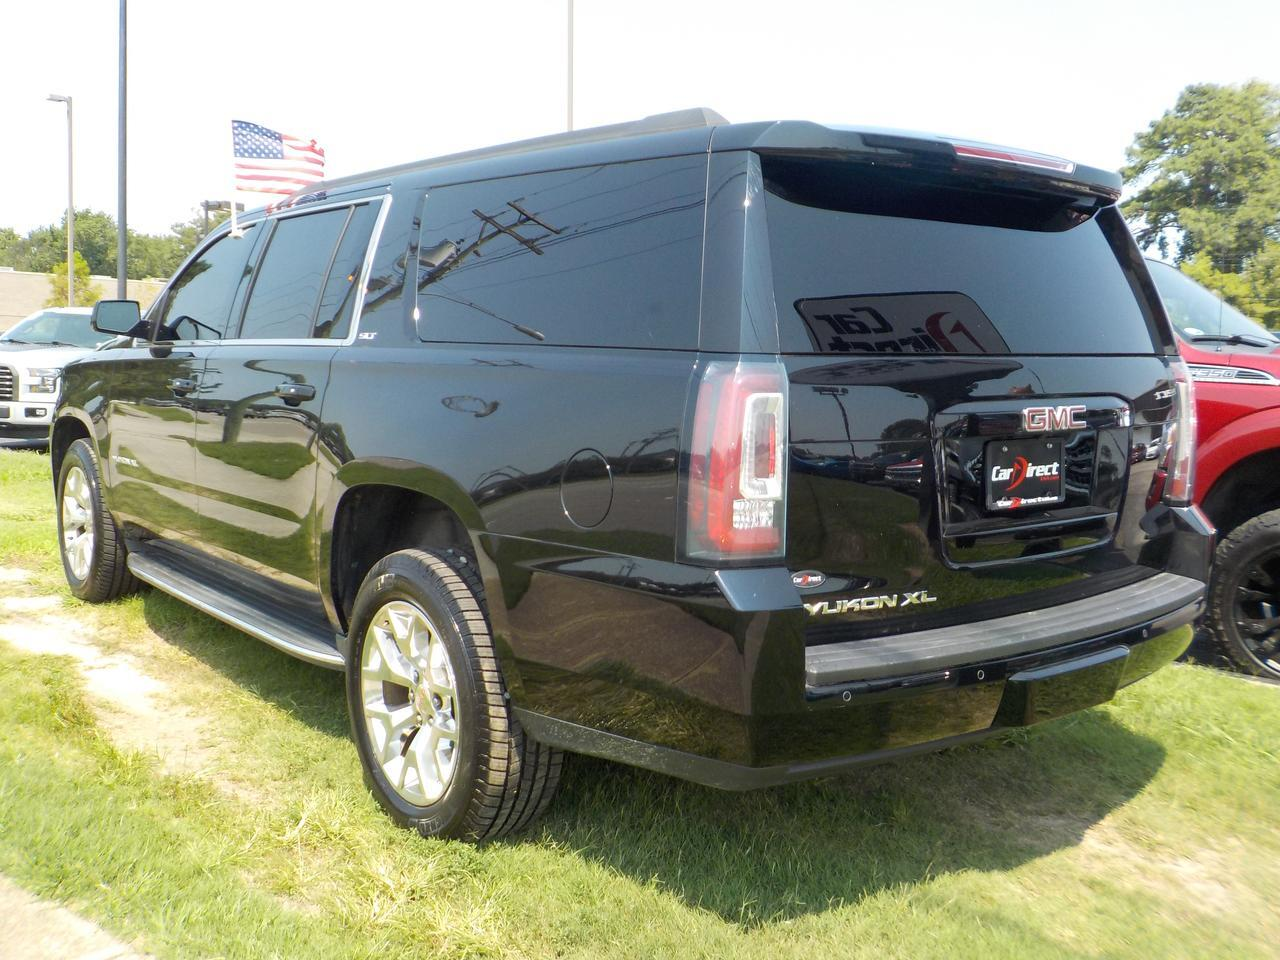 2016 GMC YUKON XL SLT 4X4, REAR A/C, SUNROOF, TINTED WINDOWS, BACKUP CAM, RUNNING BOARDS,REMOTE START! Virginia Beach VA